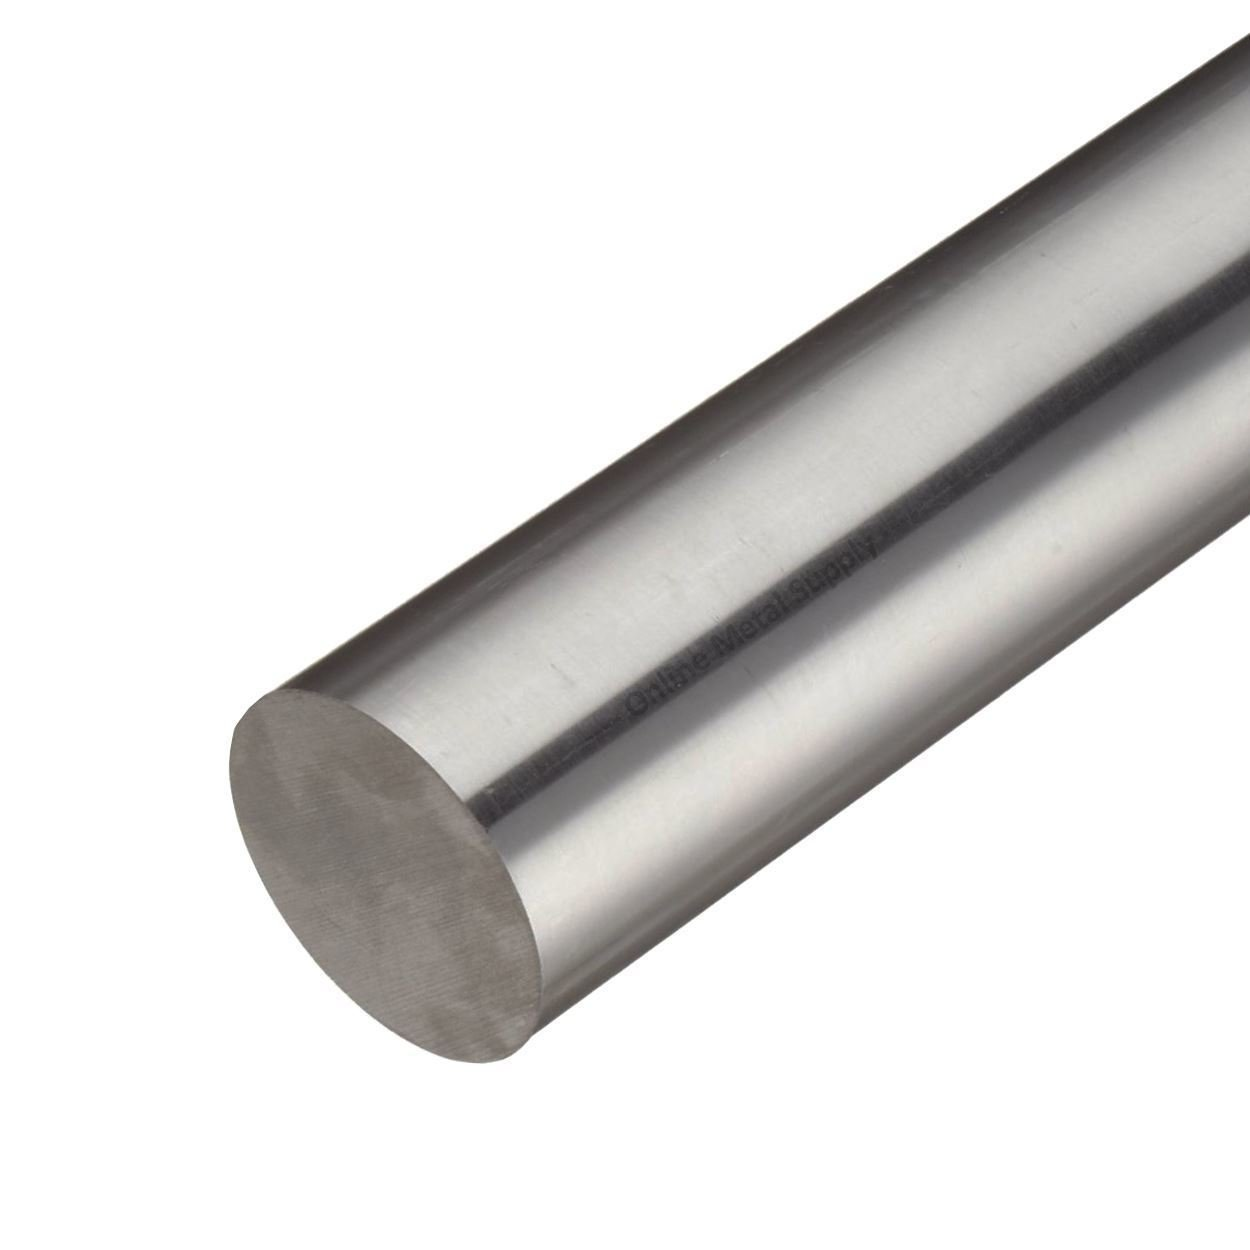 Online Metal Supply Alloy C276 Nickel Round Rod, 4.000 (4 inch) x 2 inches by Online Metal Supply